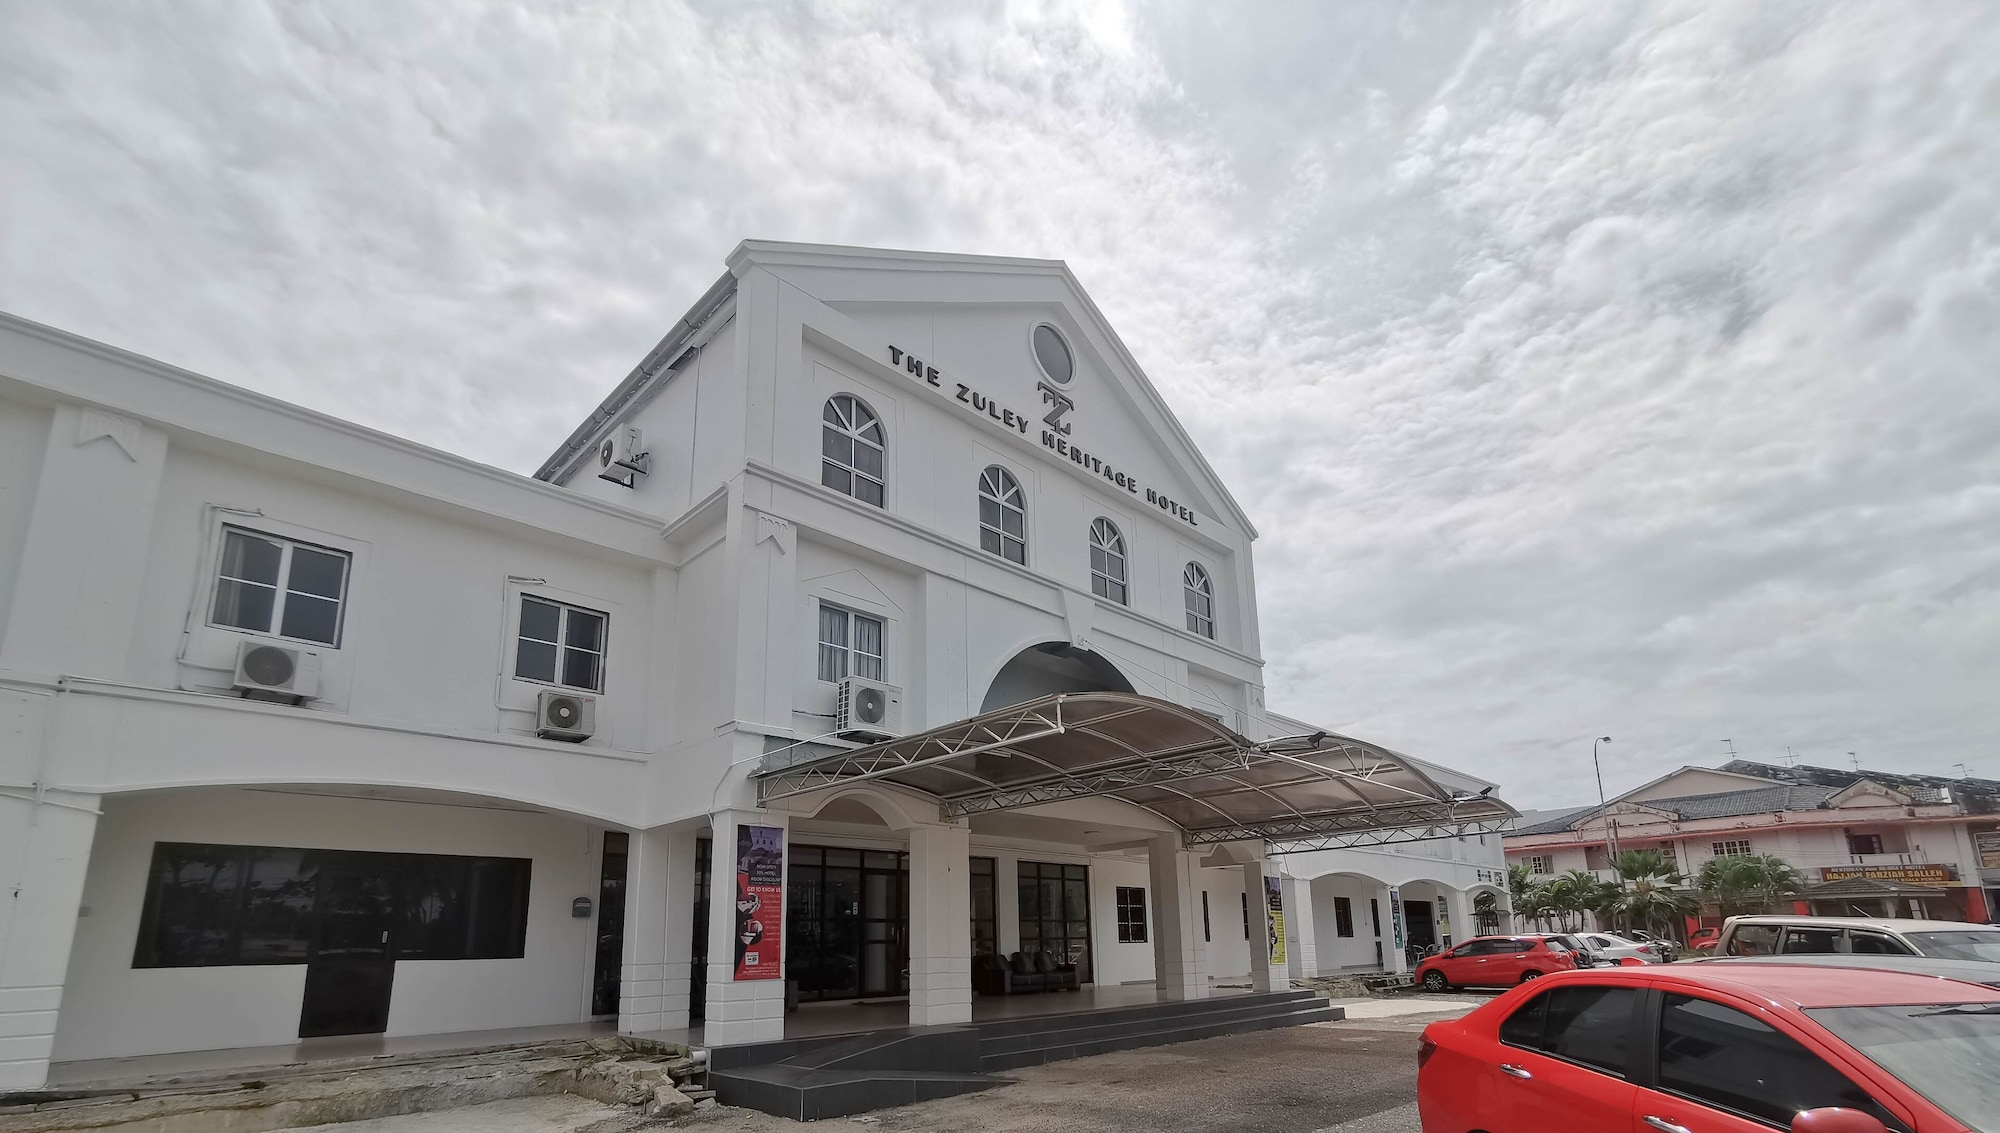 The Zuley Heritage Hotel, Perlis